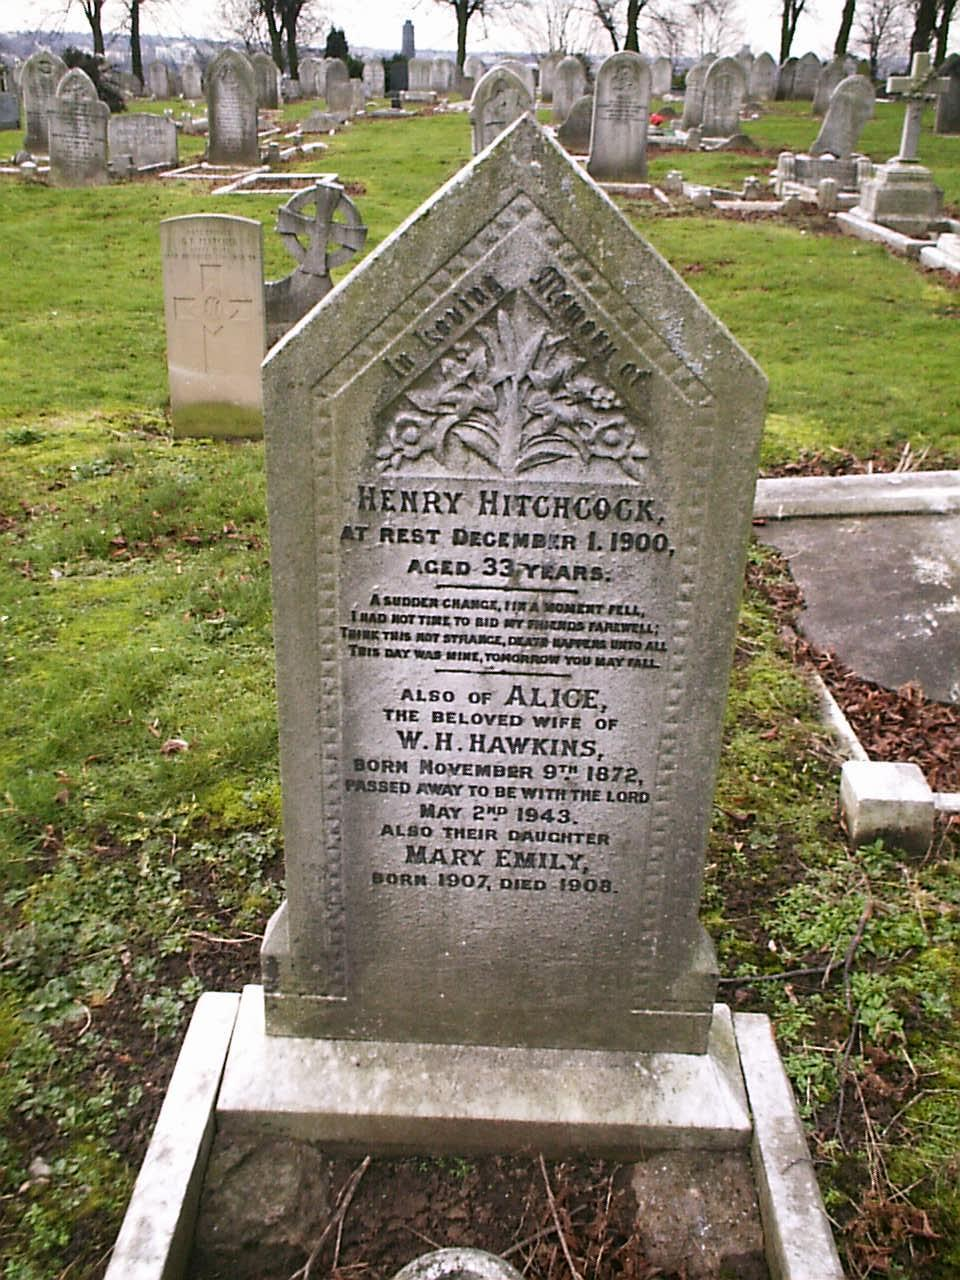 Henry Hitchcock's headstone in Nottingham Road Cemetary, Derby.